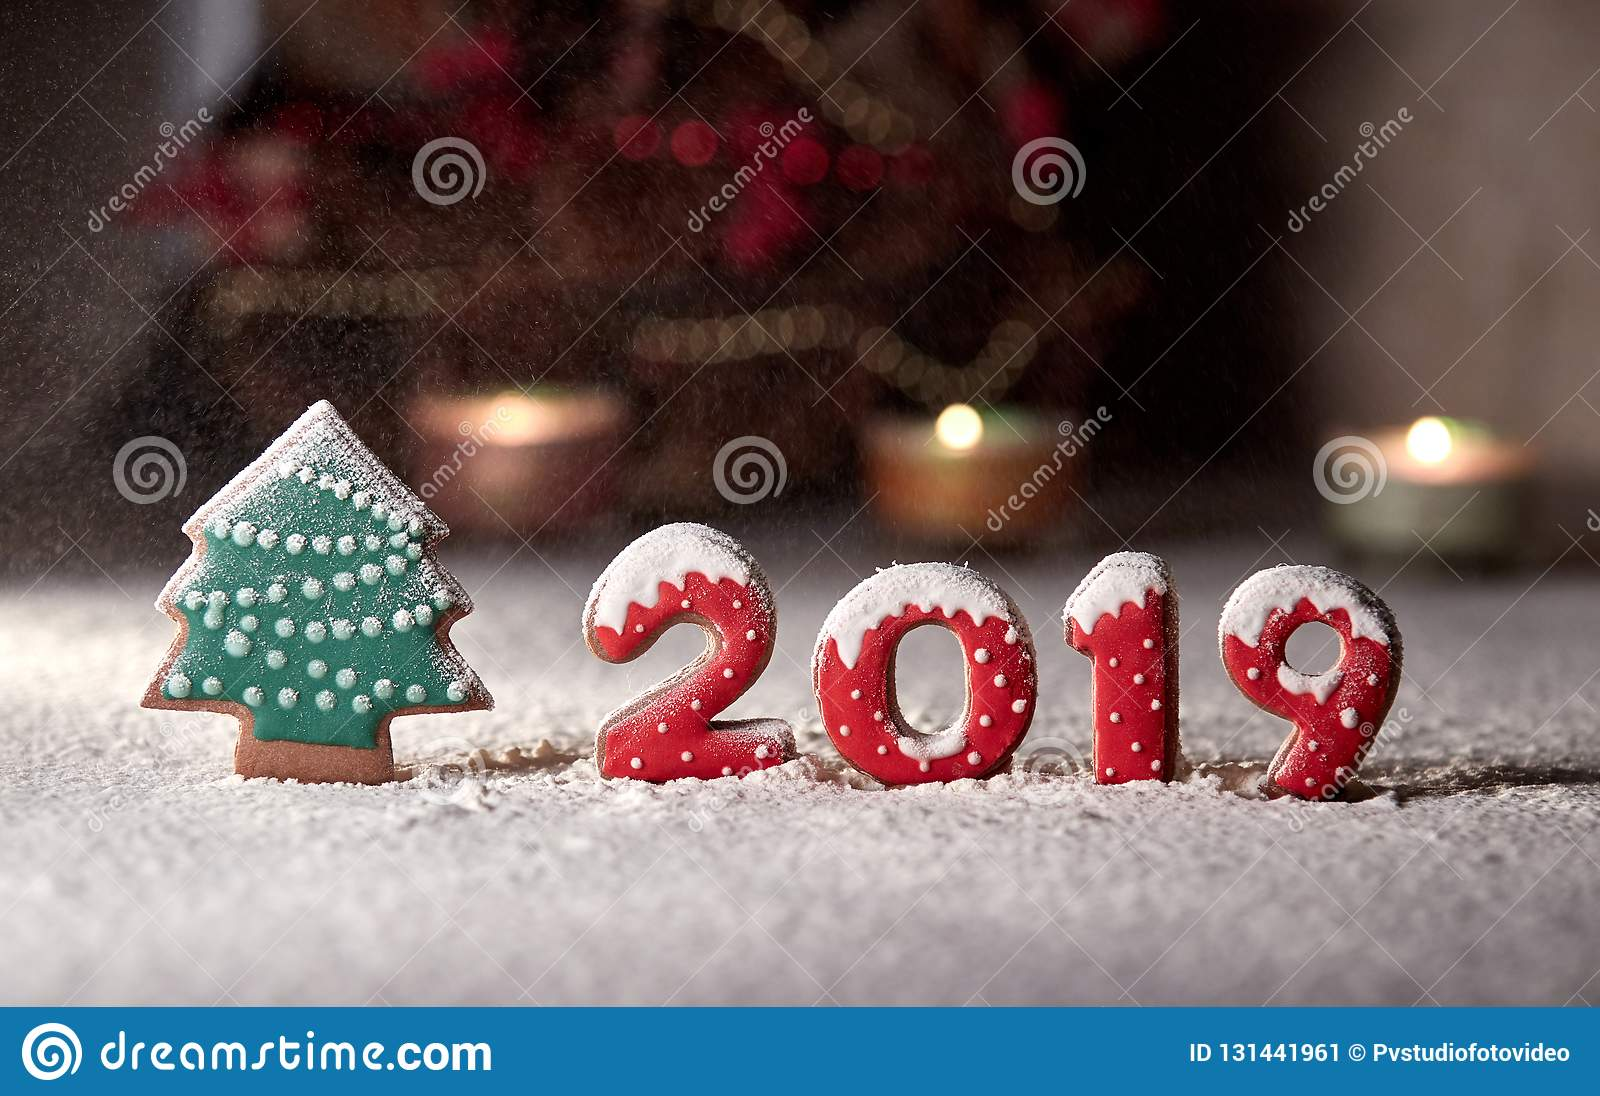 Christmas Arrangements 2019 On A Gingerbread Tree And Numbers 2019 Gingerbread Snow Falls